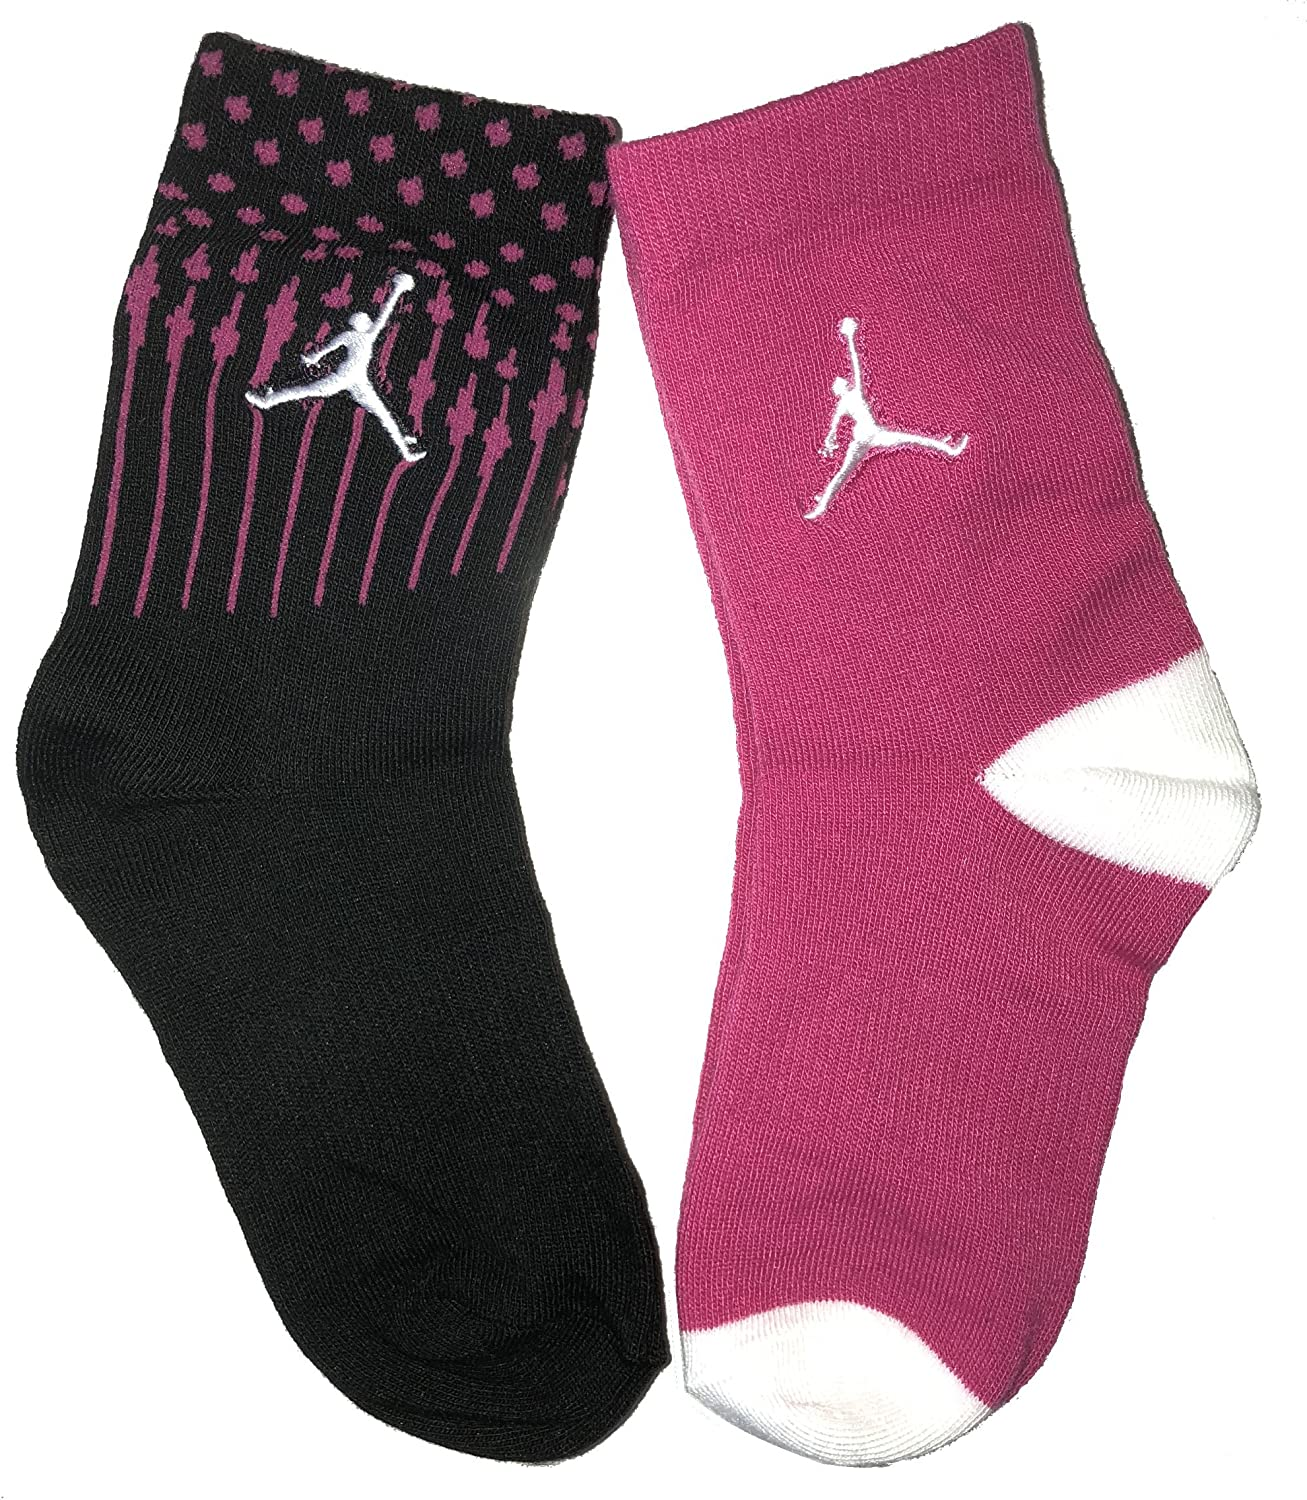 NIKE Jordan Jumpman Socks Size 5Y-7Y Kids White /& Black High Crew 2 Pair